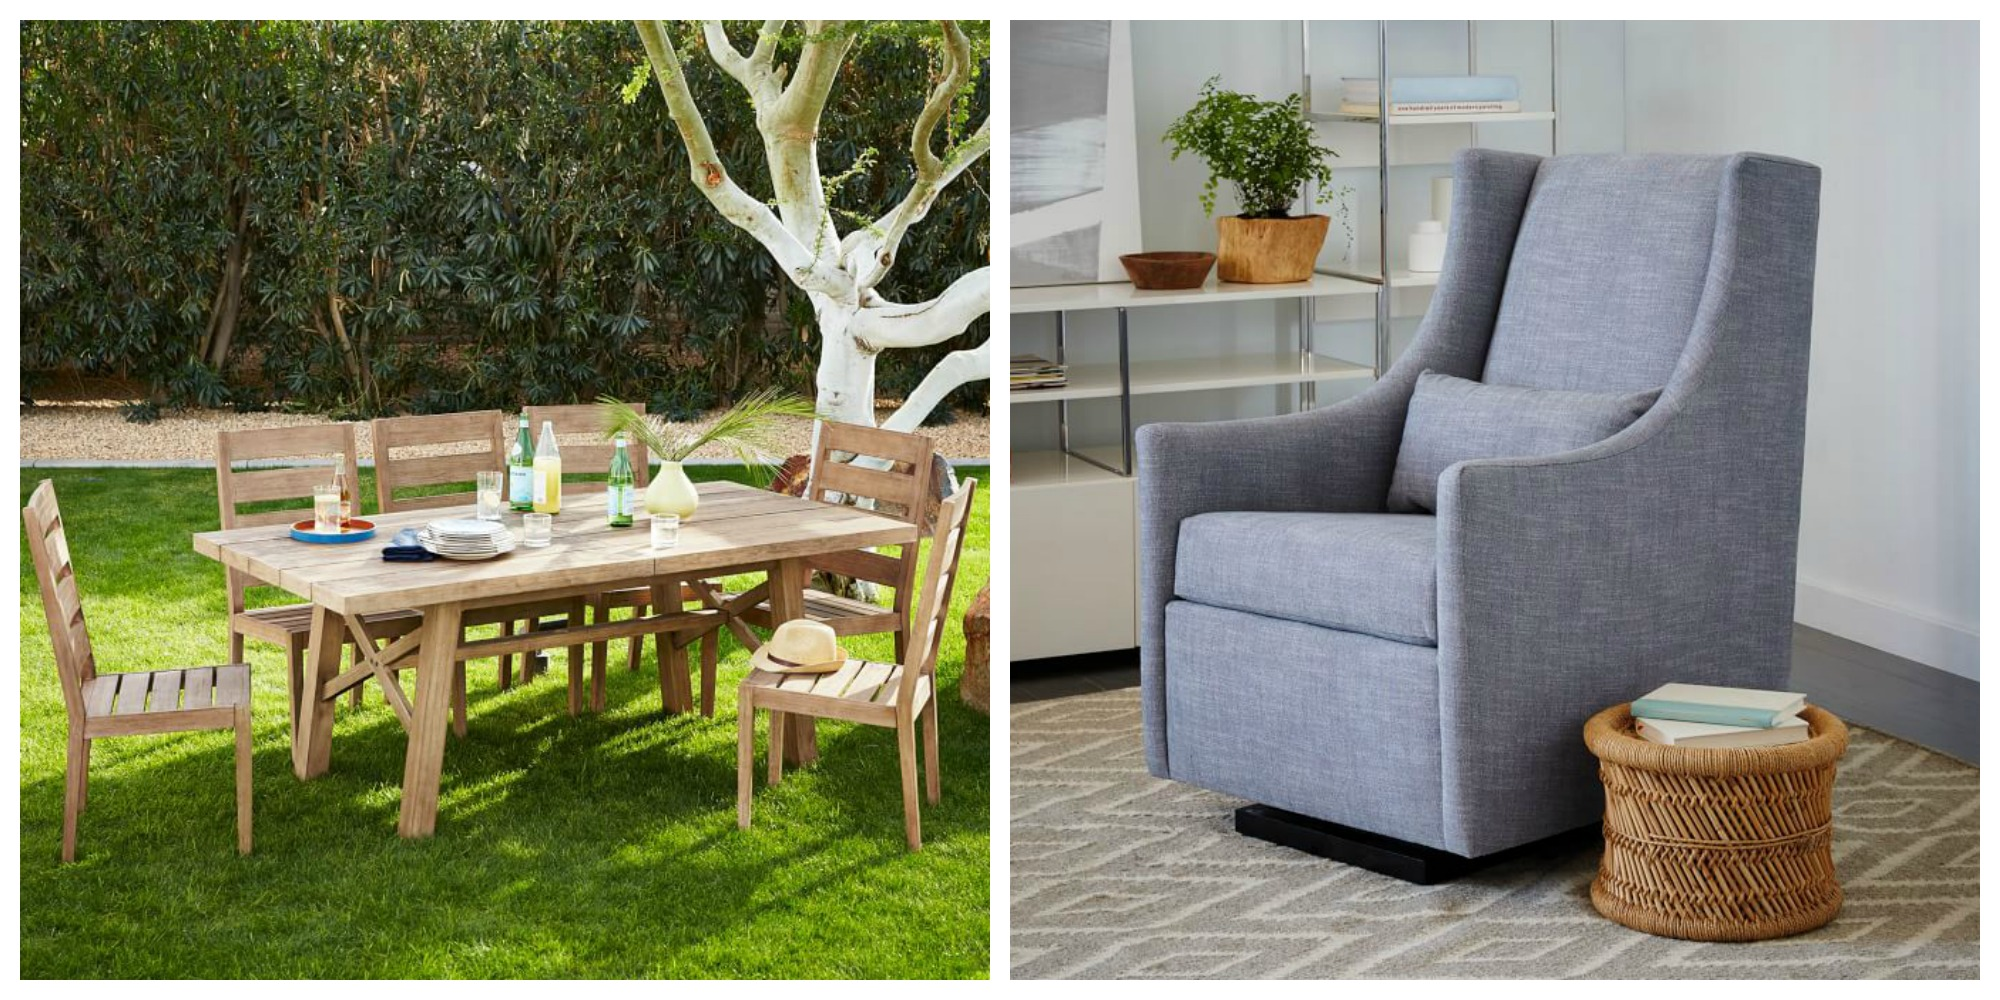 Furnish Your Home W/ Up To 70% Off At West Elm: Outdoor Dining Set $1,400,  Accessories From $15, More